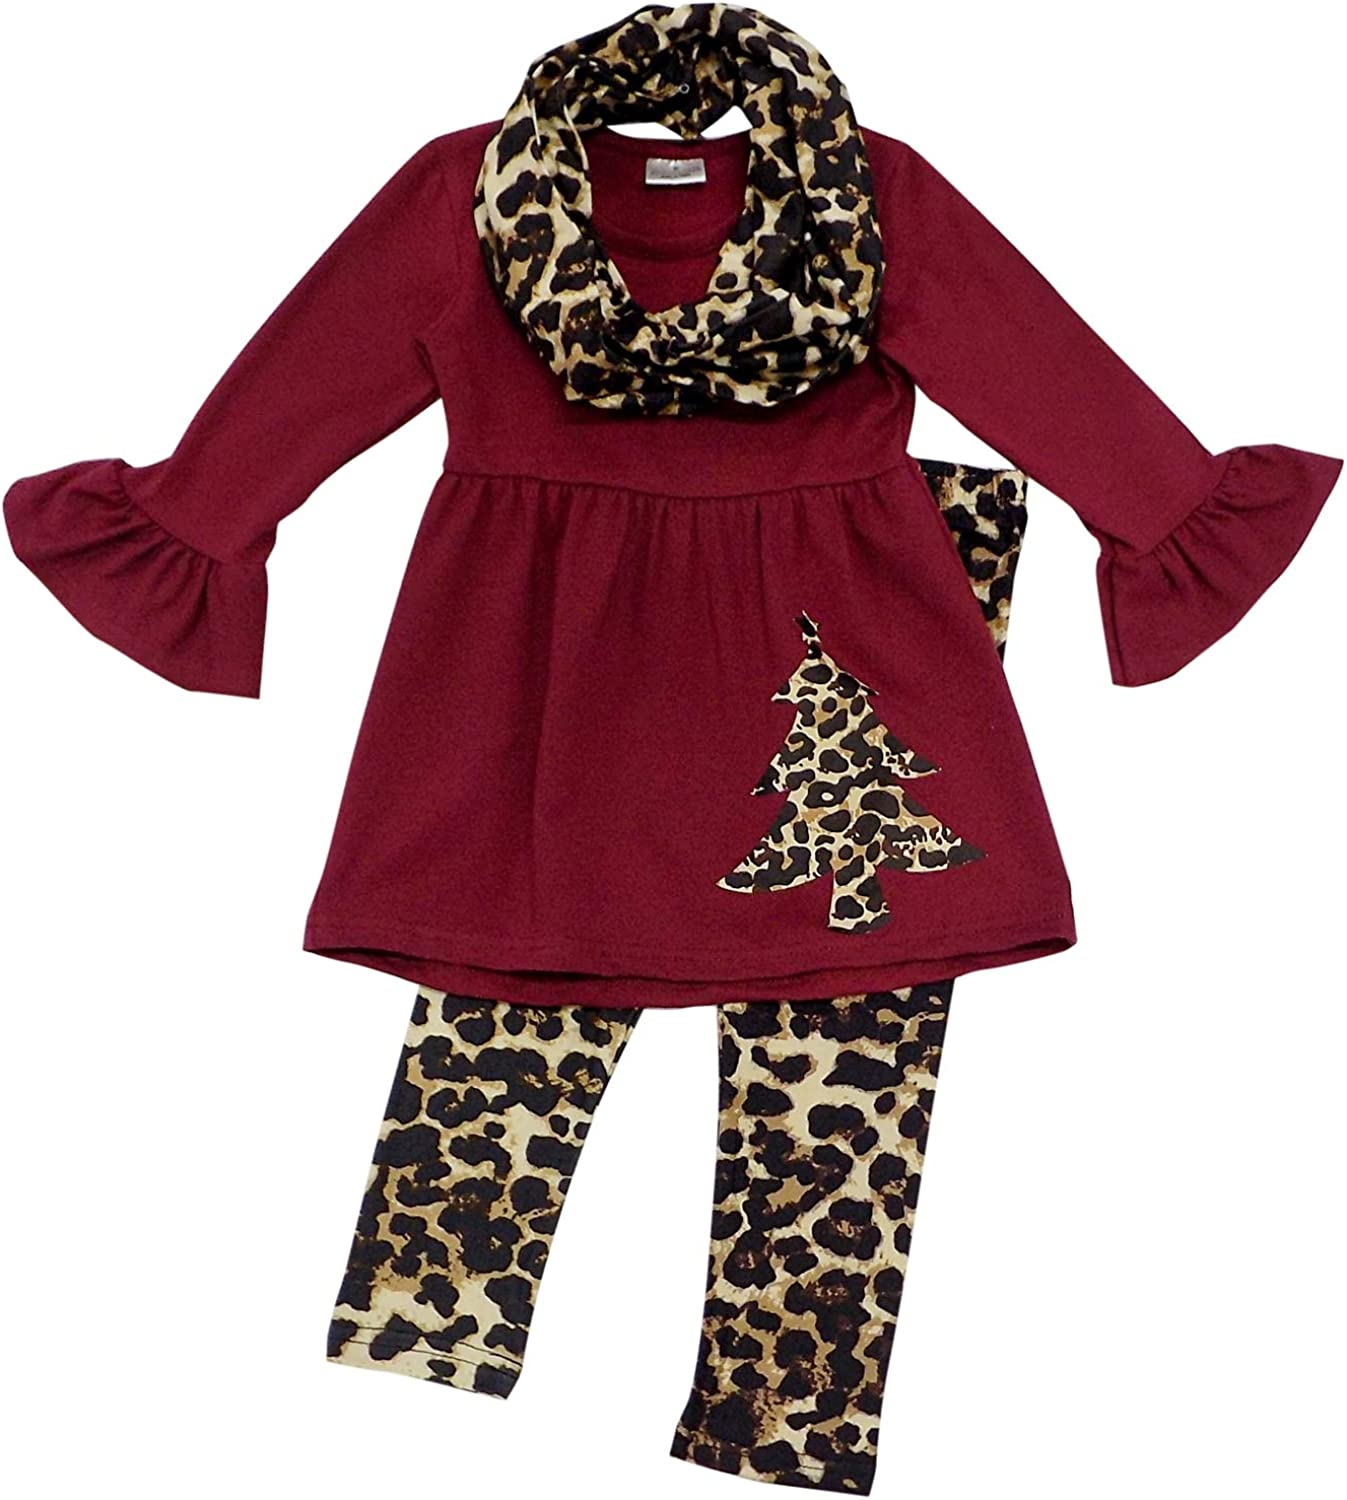 Boutique Infinity Scarf Set So Sydney Toddler Girls 3 Pc Winter Christmas Holiday Ruffle Tunic Outfit